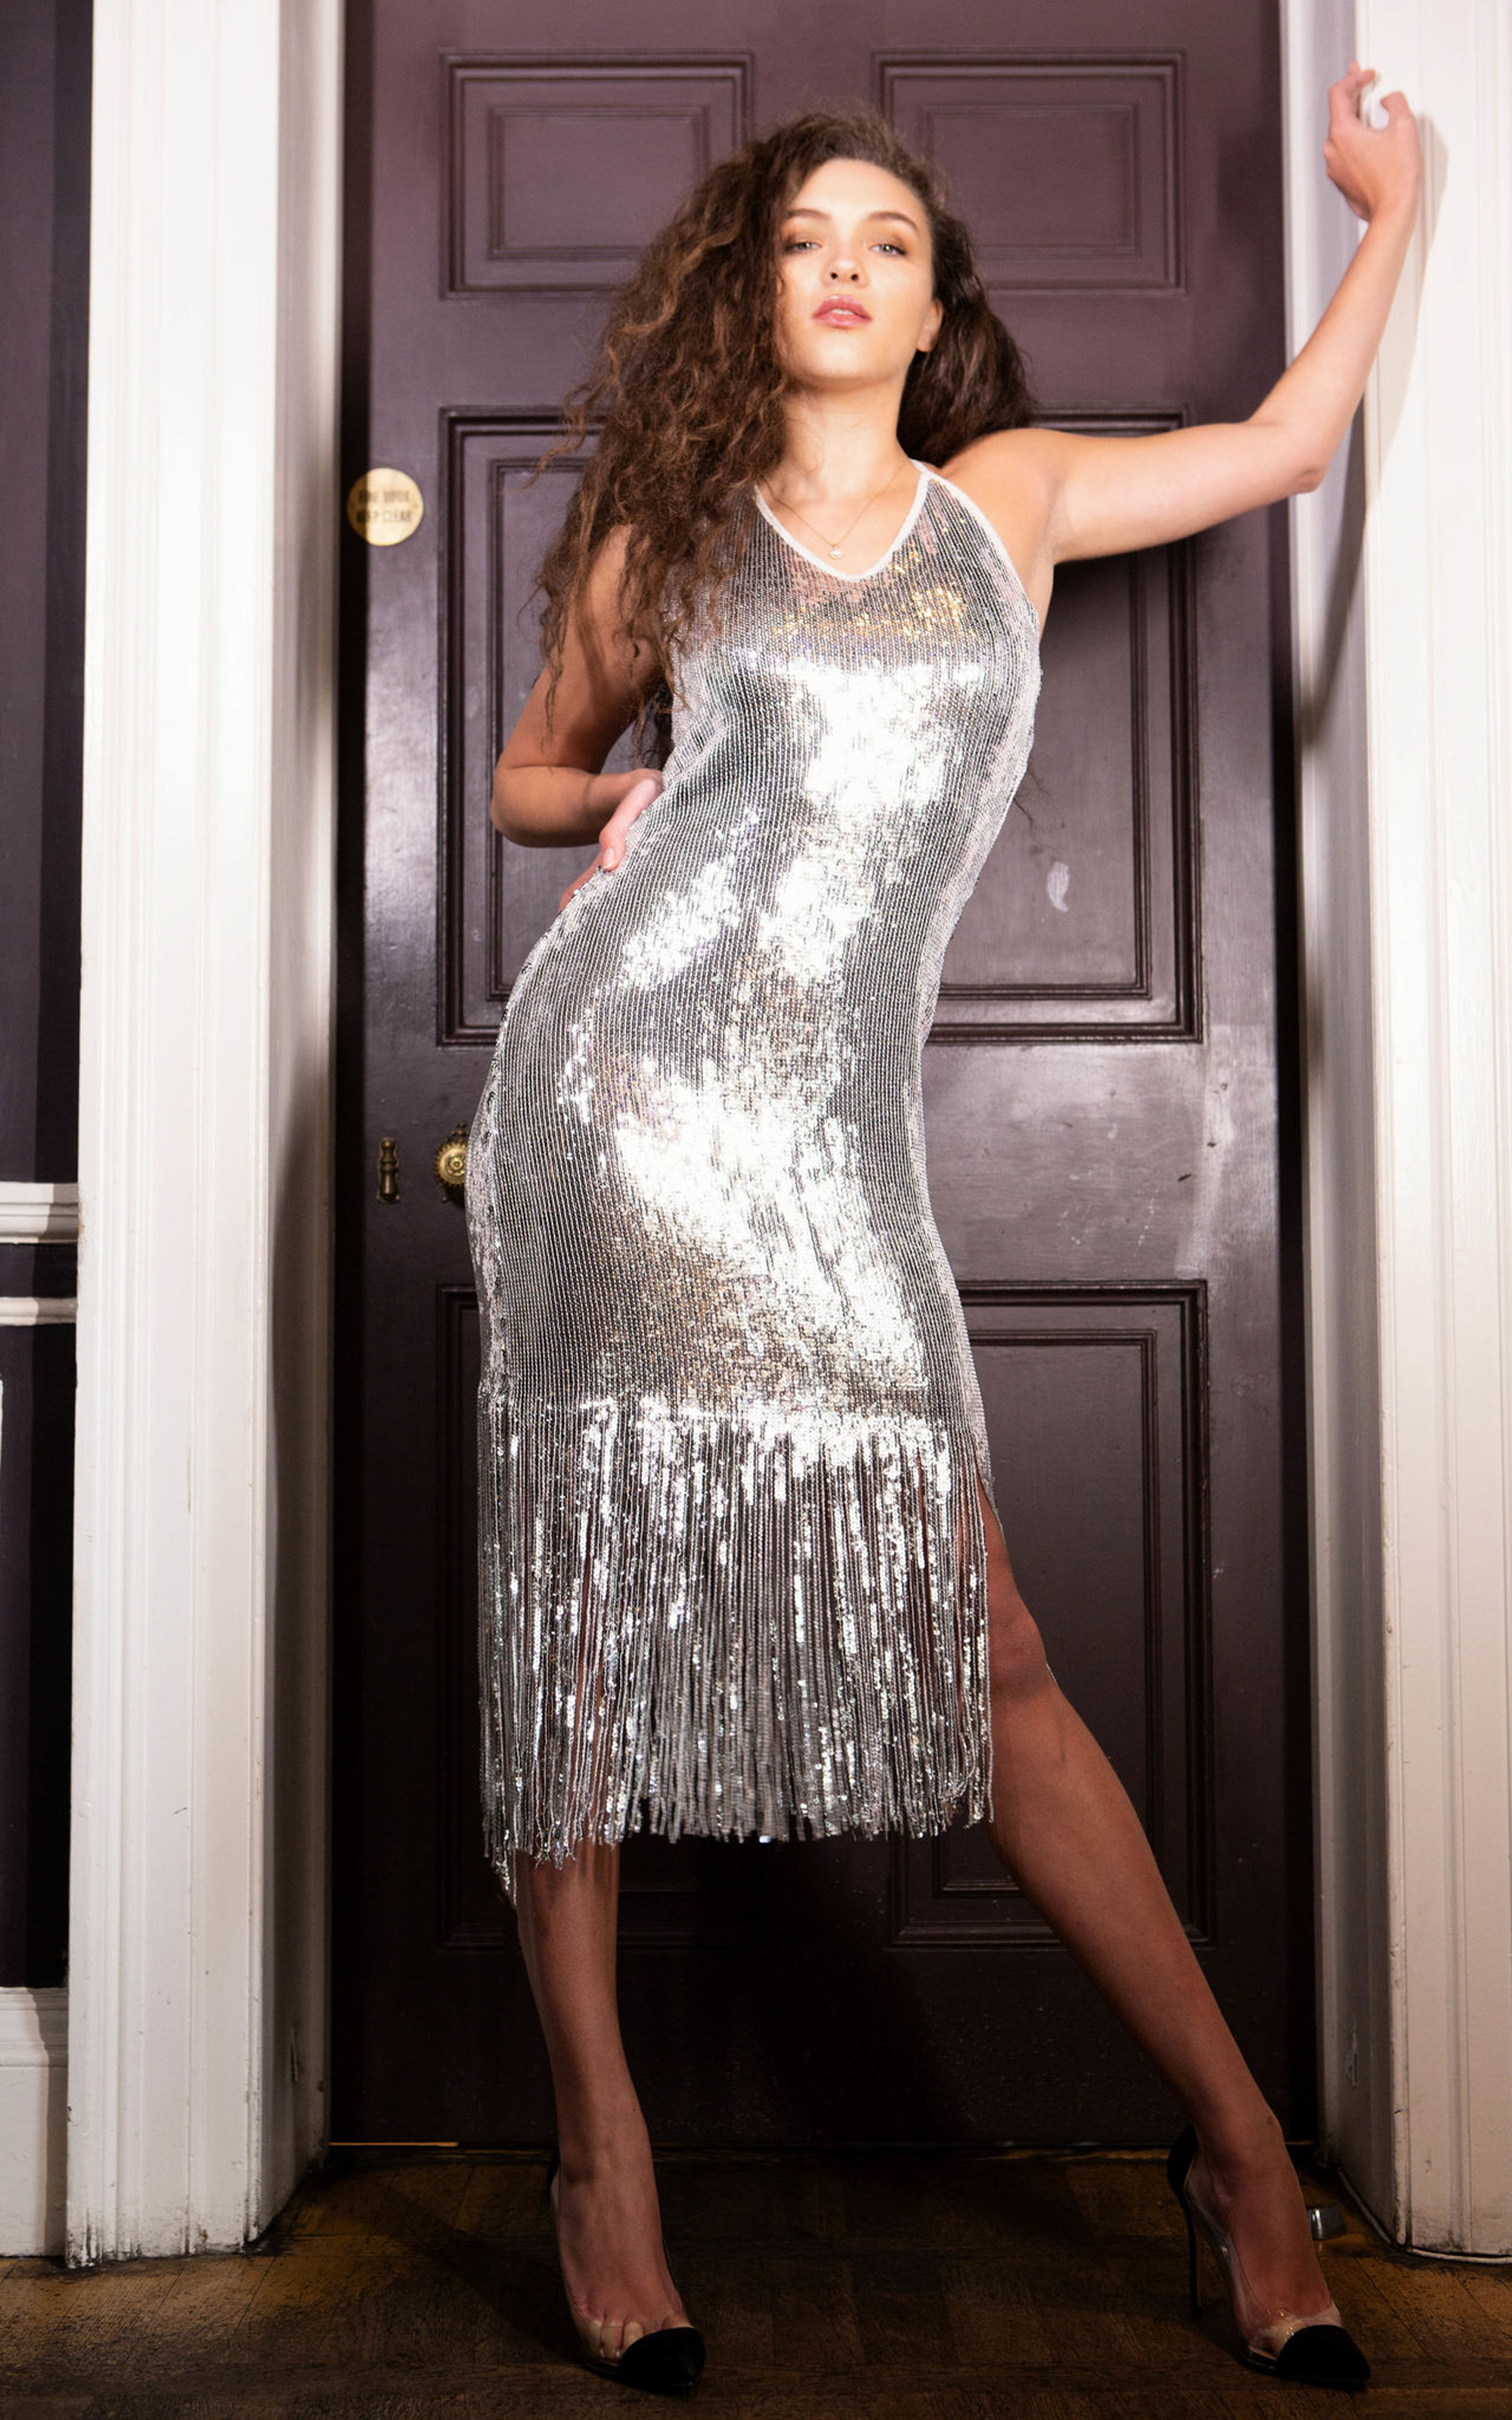 21st Mill Sasskia Silver Sequin Fringed Hem Bodycon Dress